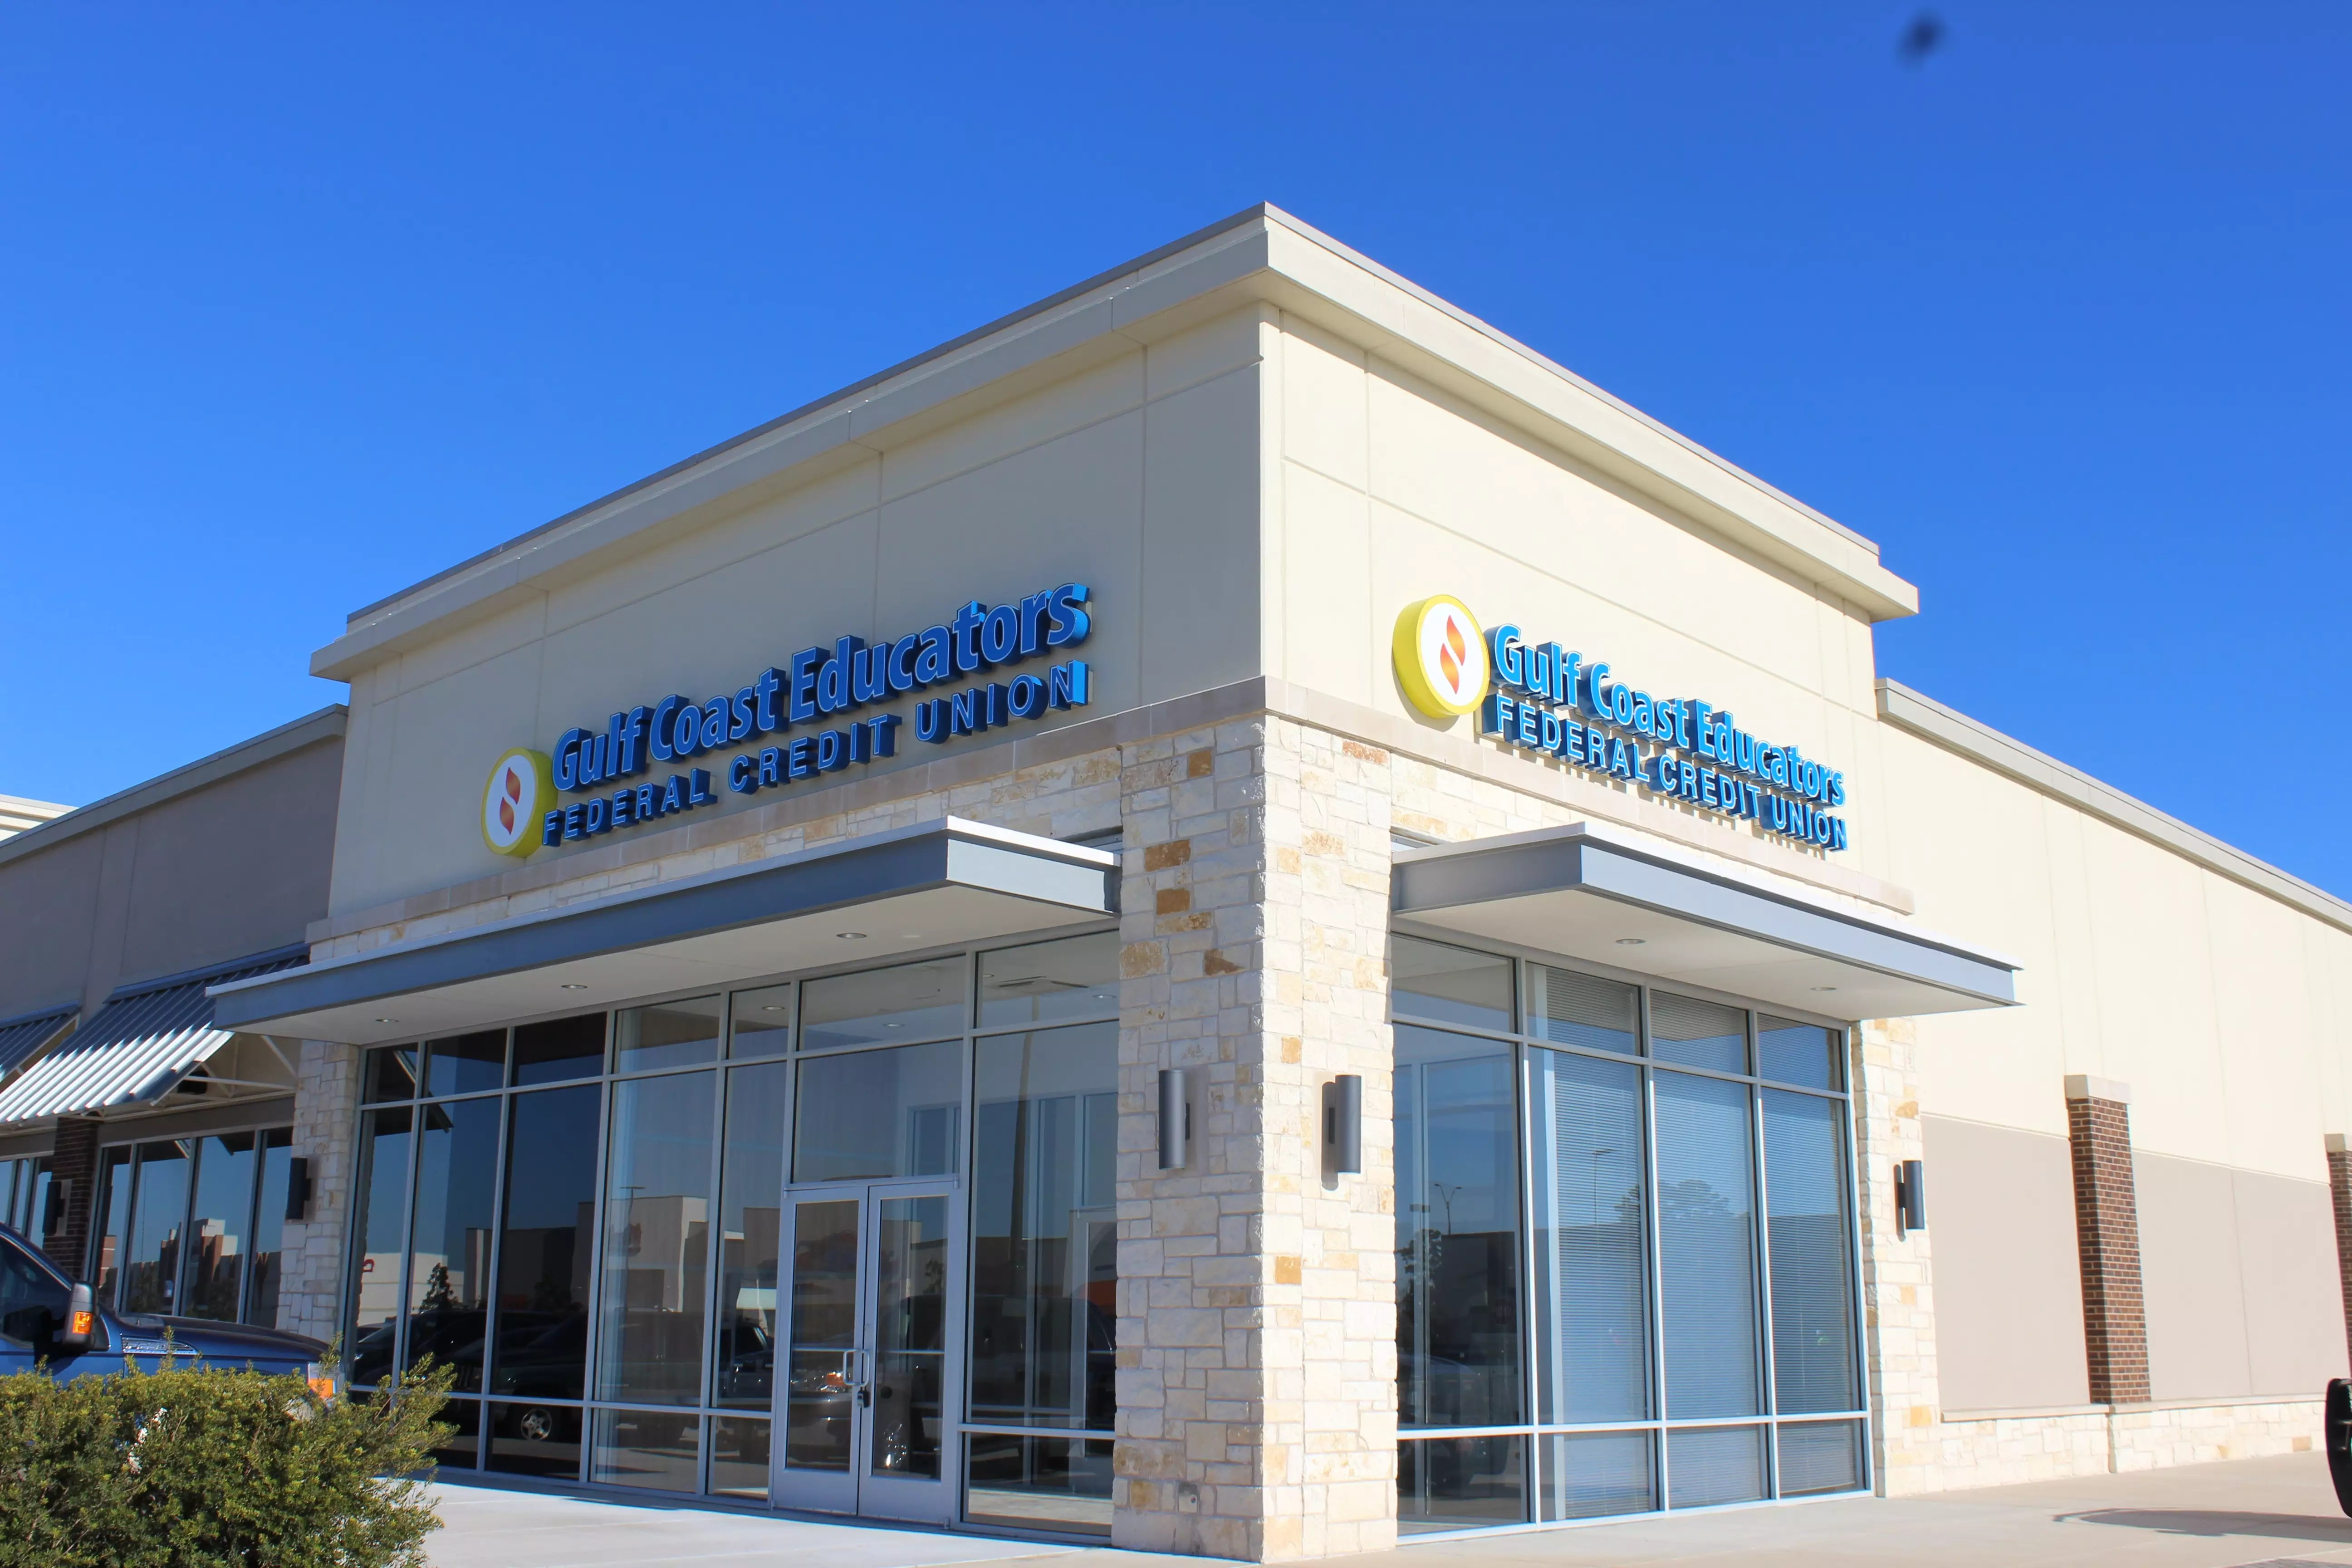 Educators And Employees Credit Union